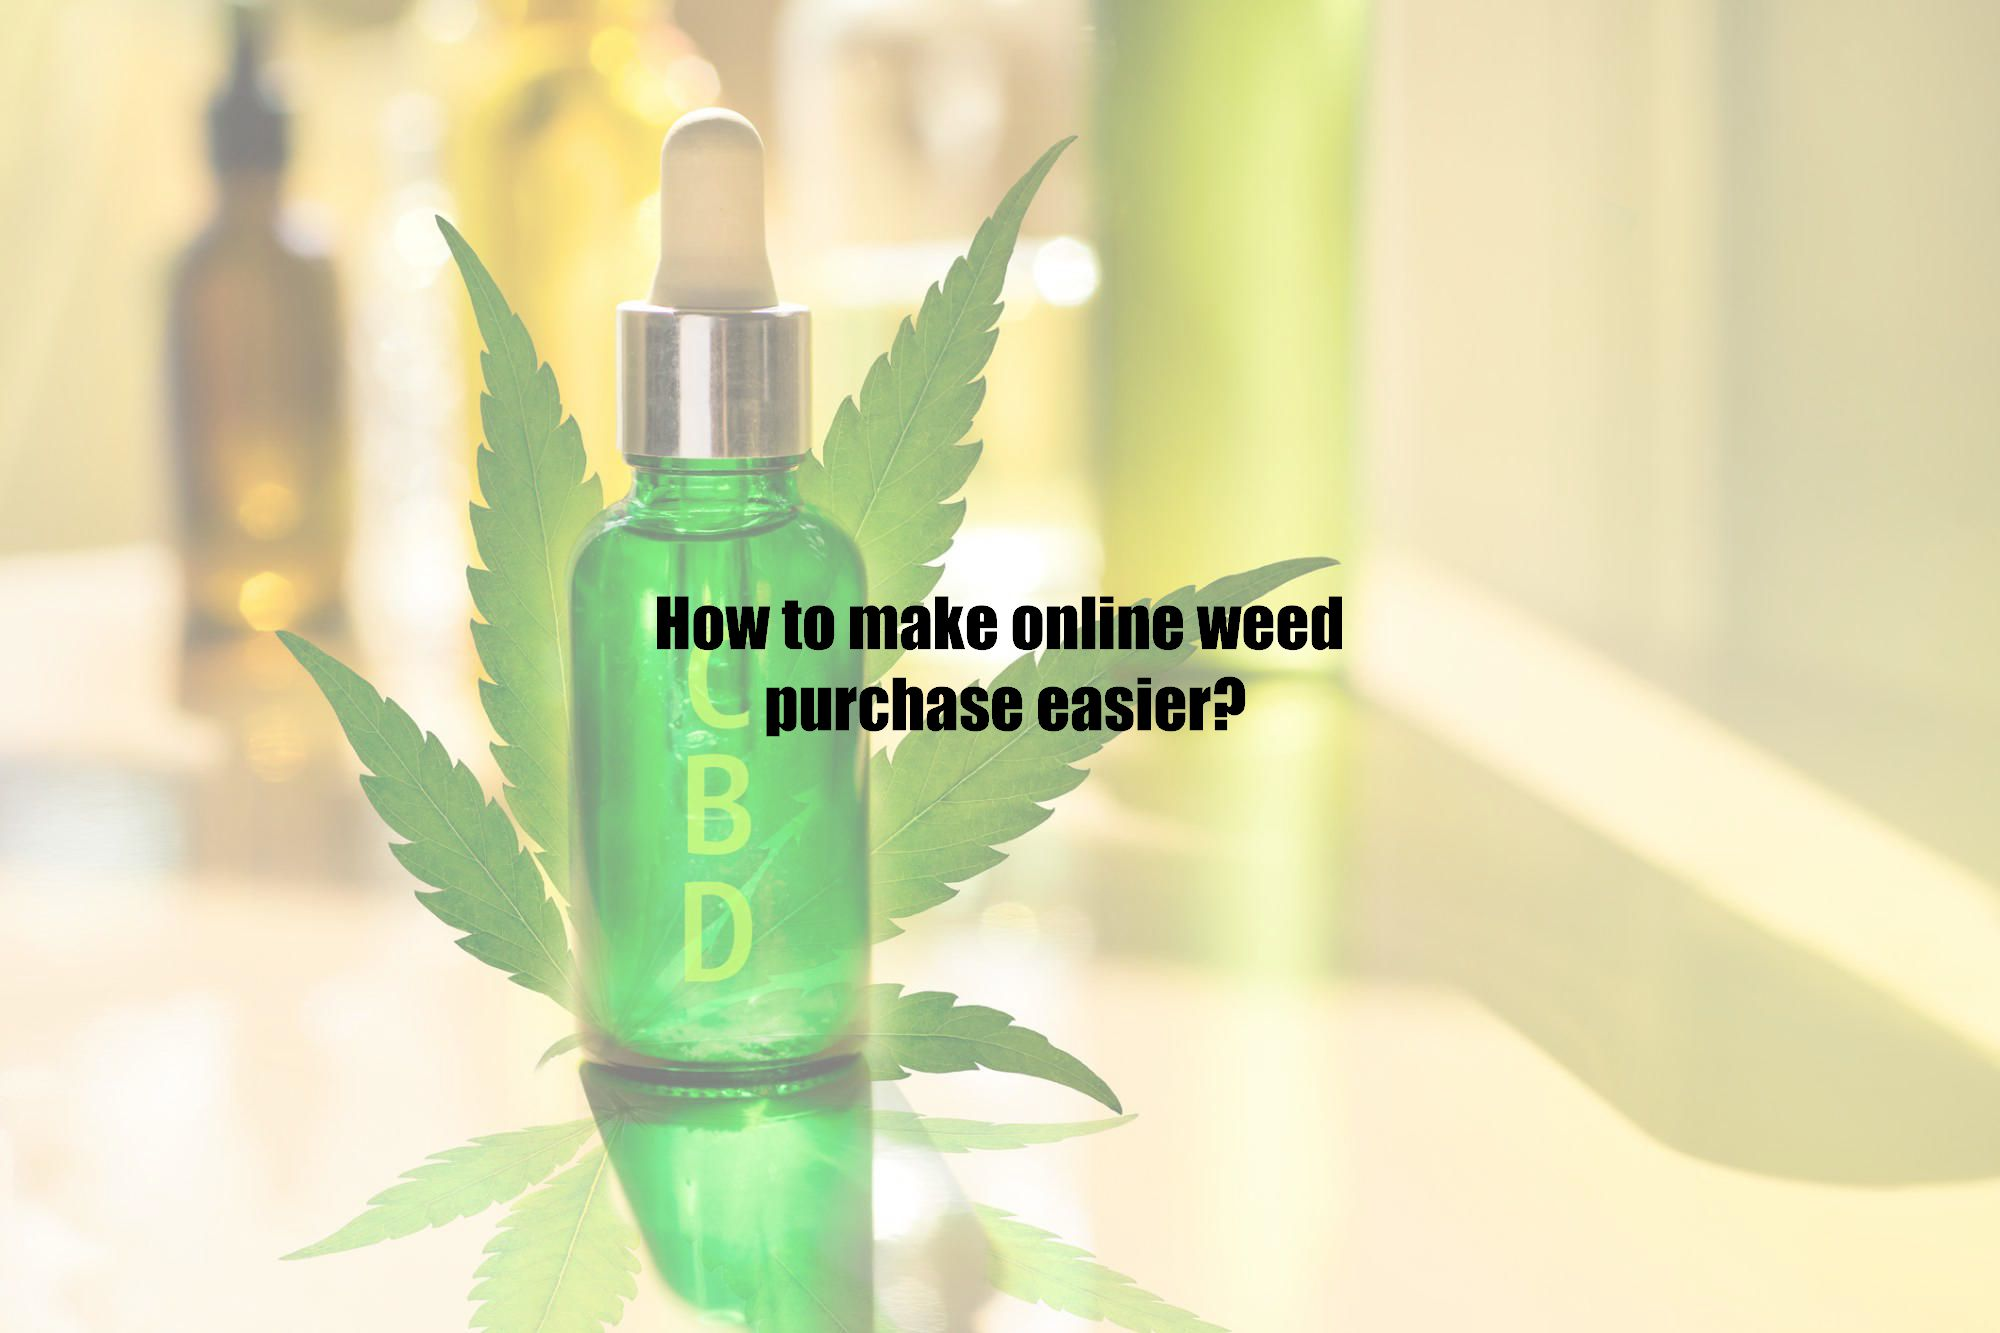 How to make online weed purchase easier?